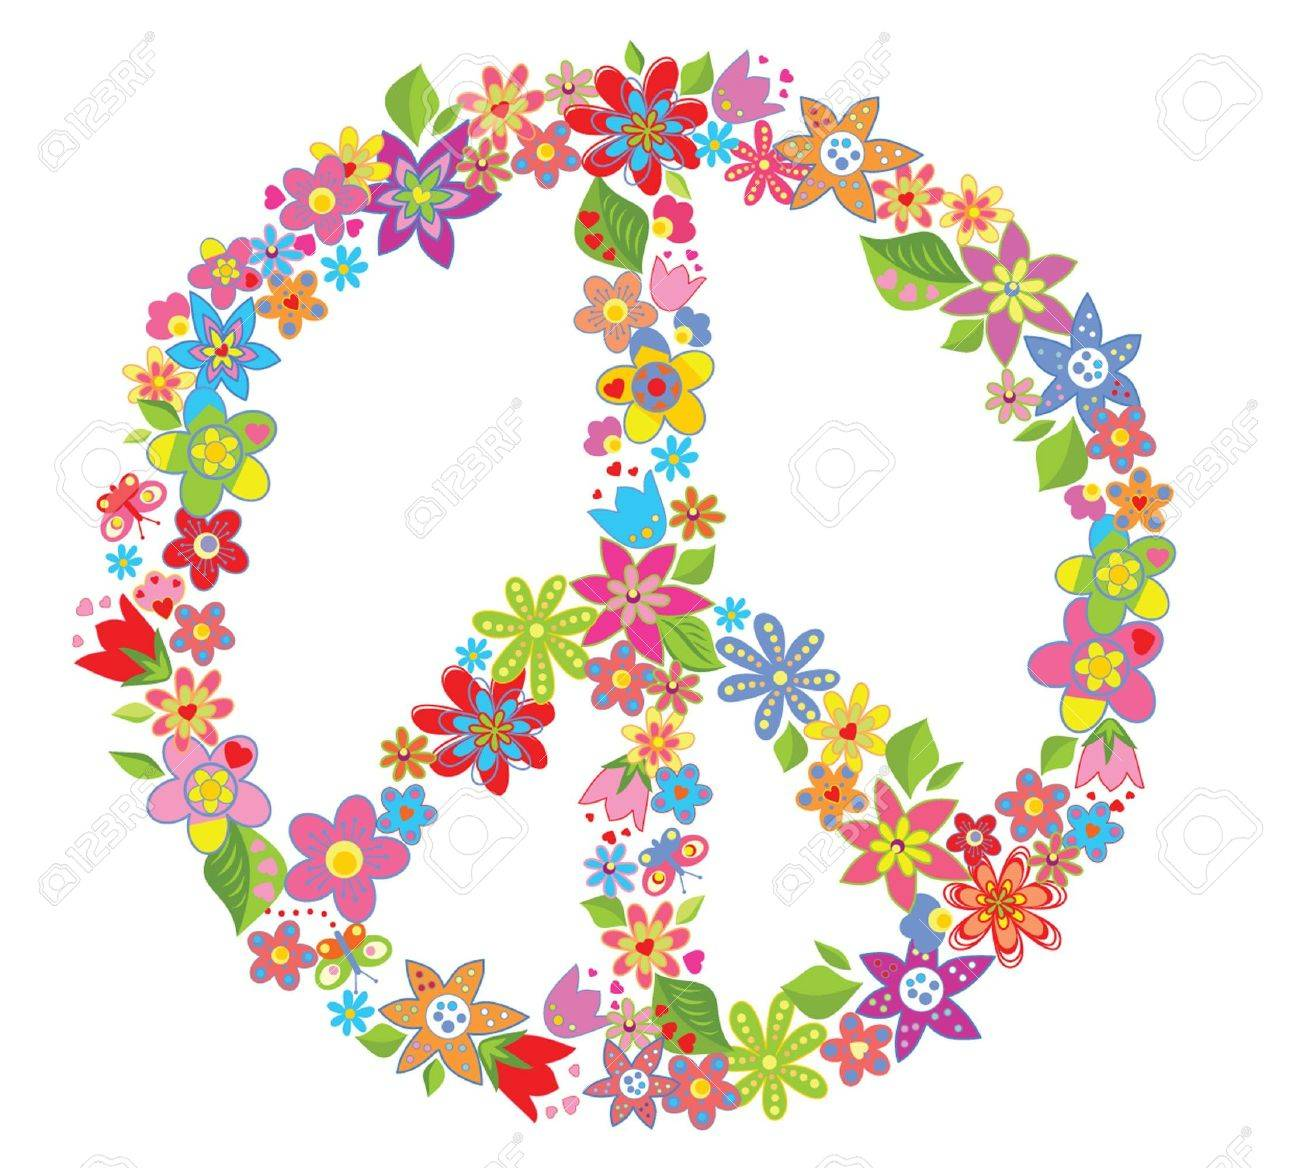 Peace flower symbol royalty free cliparts vectors and stock peace flower symbol stock vector 19034851 biocorpaavc Choice Image